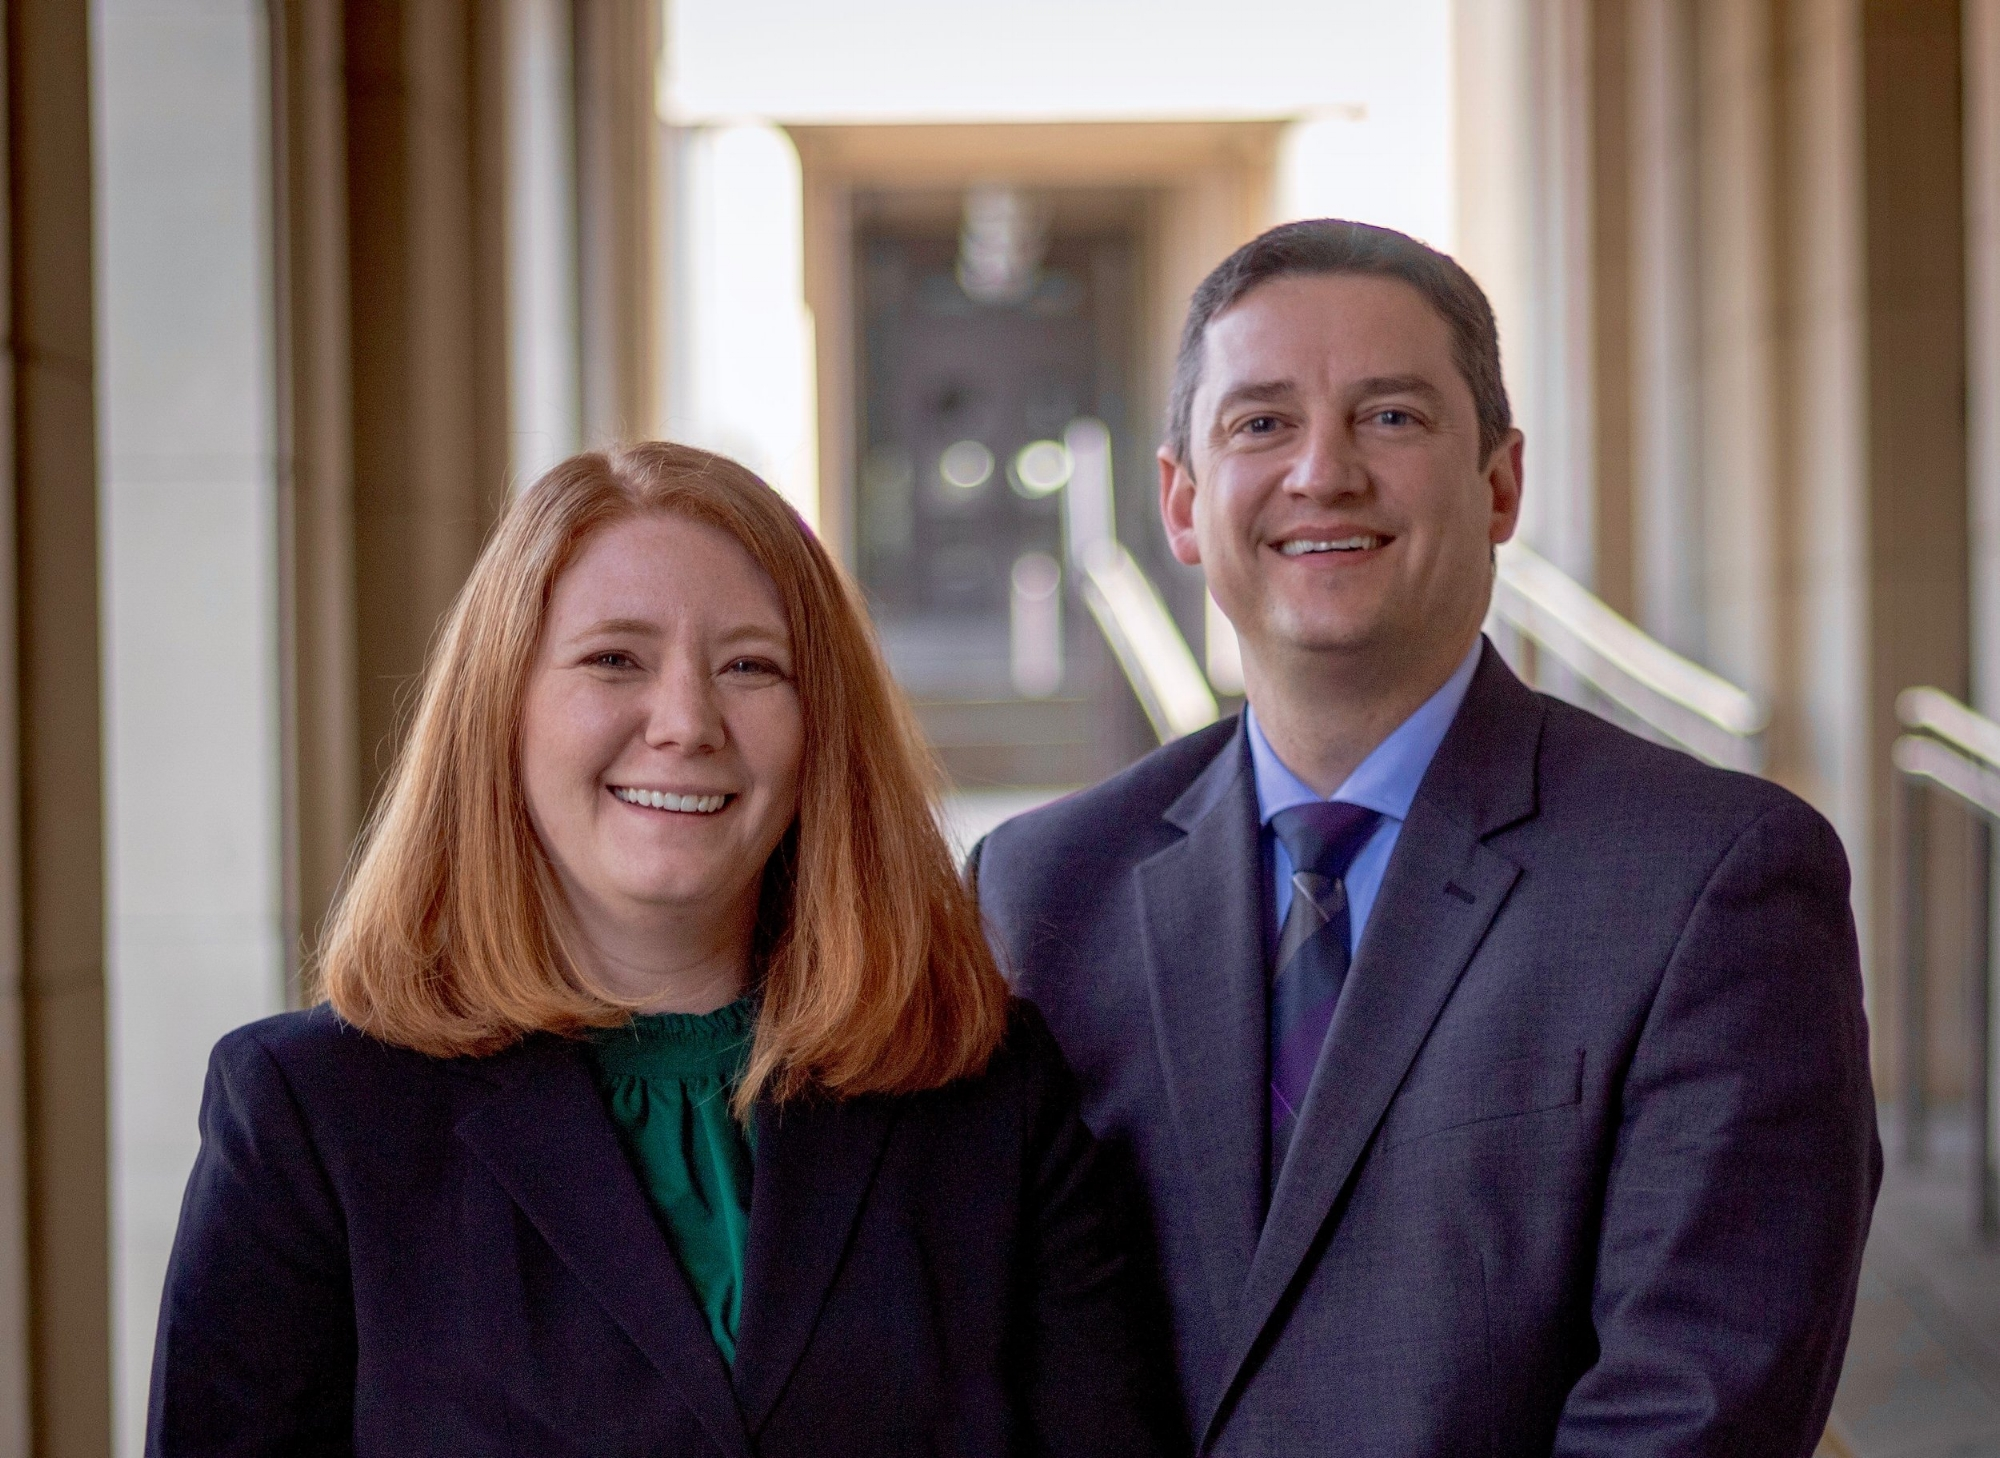 Anna Dominick and Carl Devine - Attorneys in Lexington, KY focusing on family law including divorce, child custody, child support, separation, maintenance/alimony, adoptions, domestic violence, high net worth asset division, and prenuptial and postnuptial agreements.